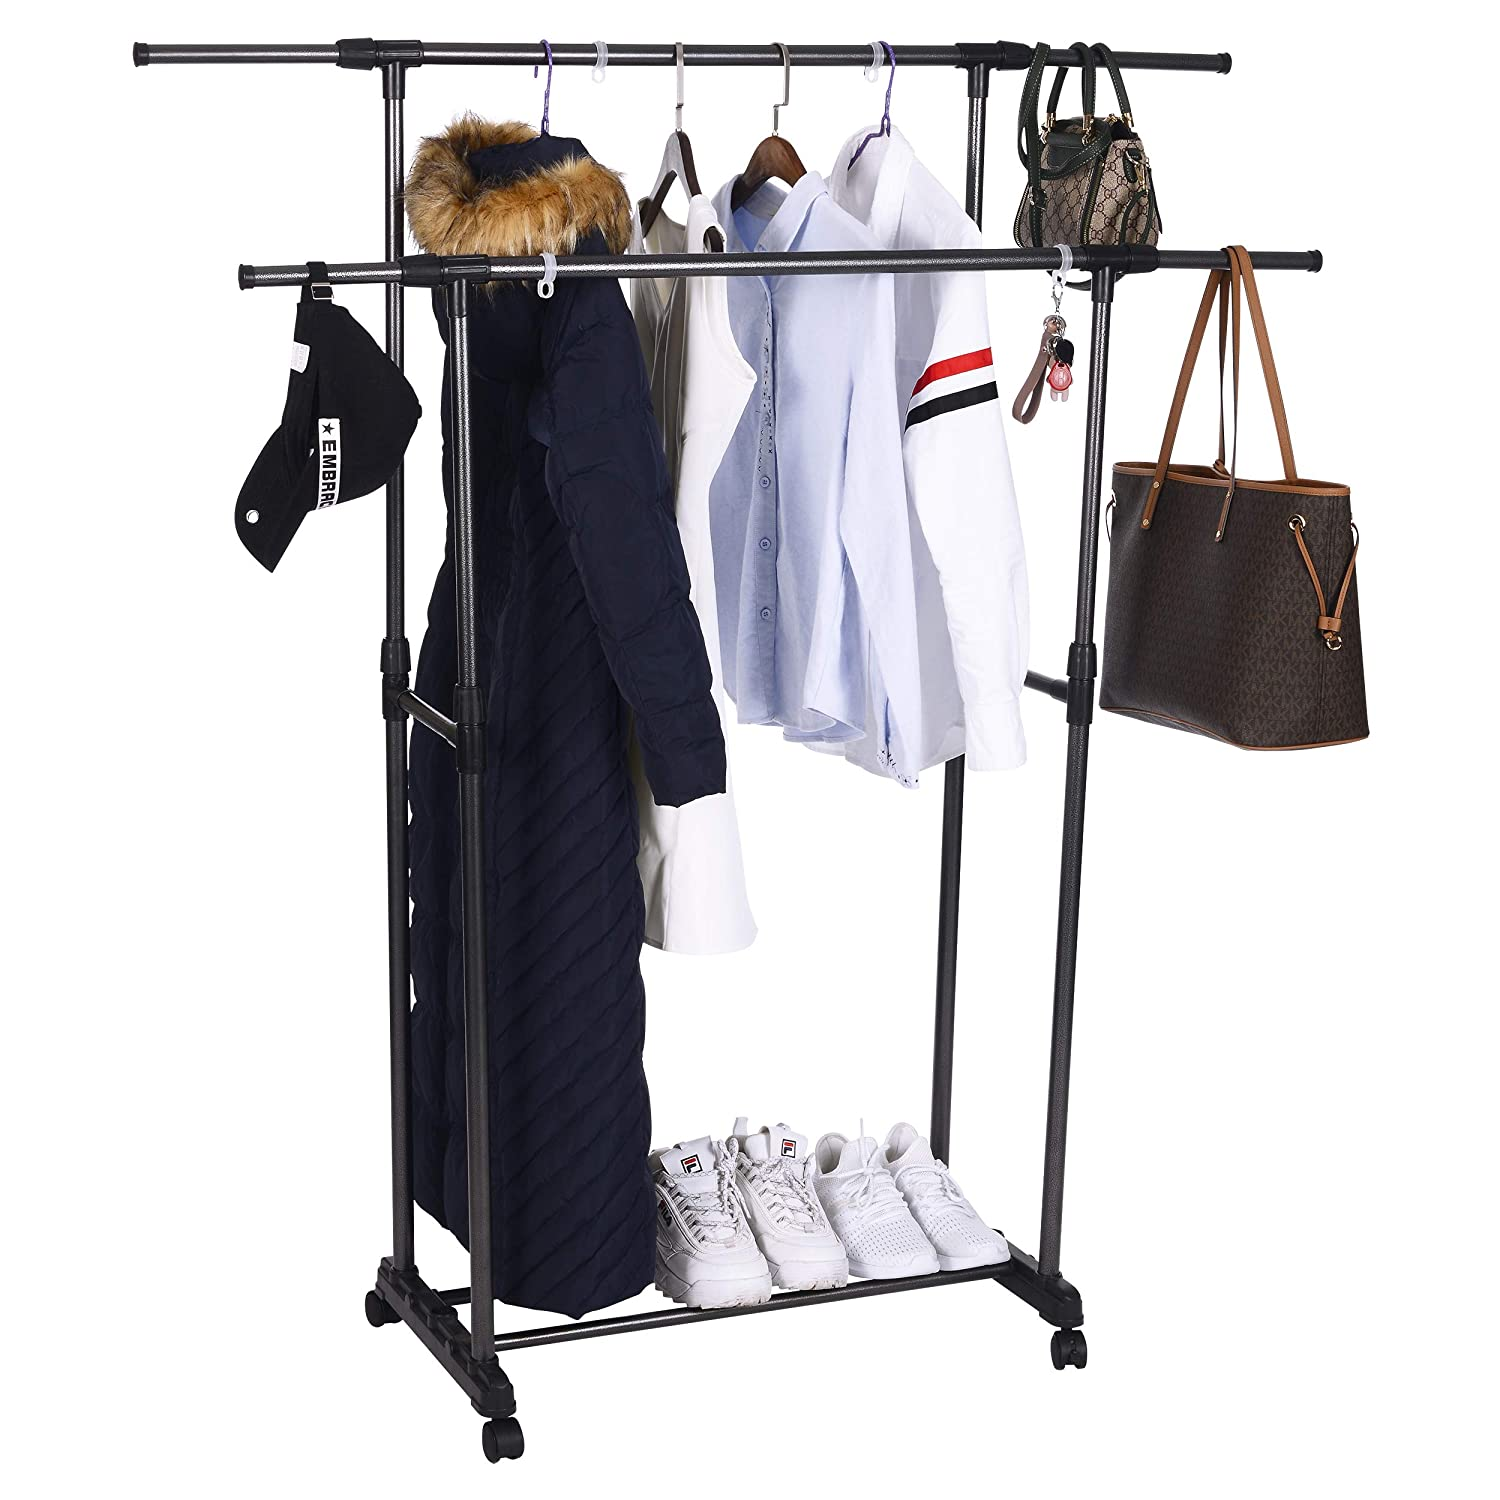 OBOR Clothes Garment Rack with Wheels 2 Tier Double Rods Height Adjustable